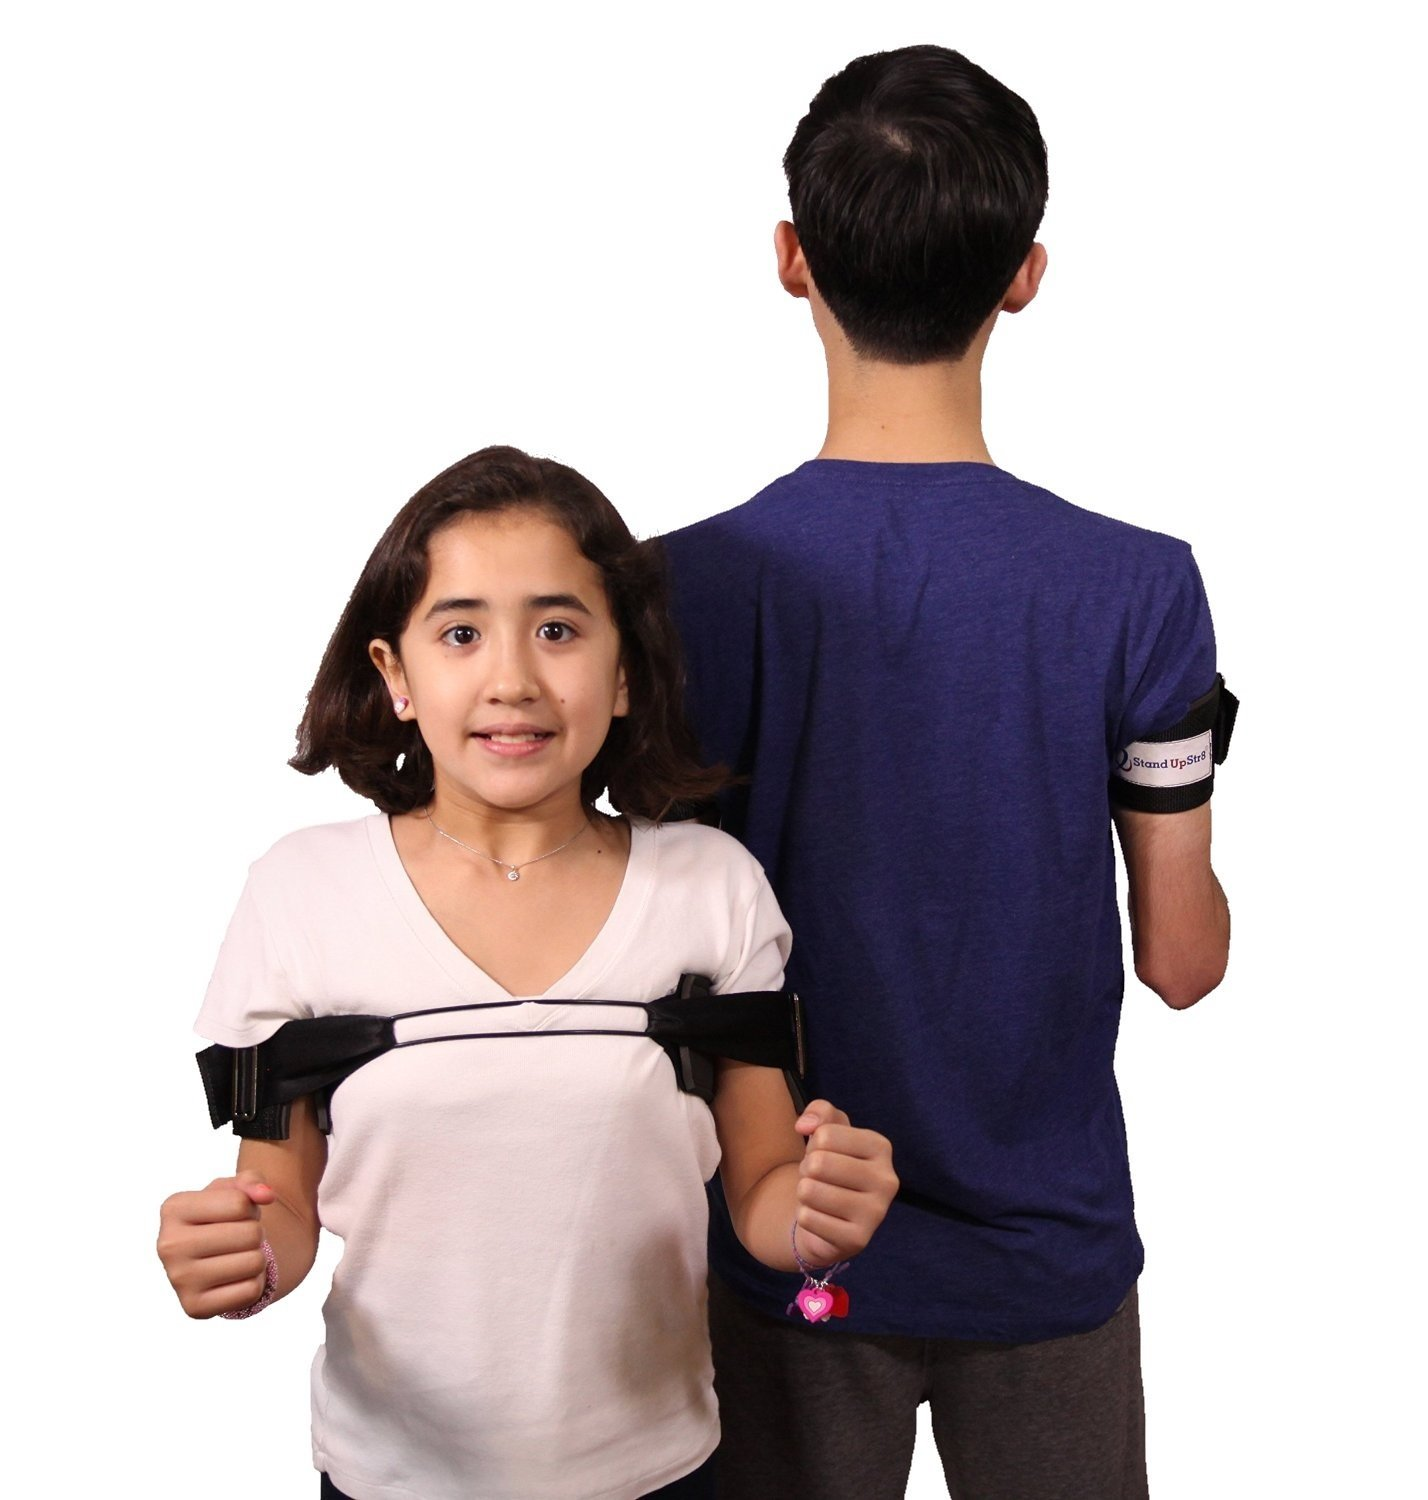 Stand Up Str8 Posture Corrector - Middle Back Exerciser, Jr - for Children and Petite Adults